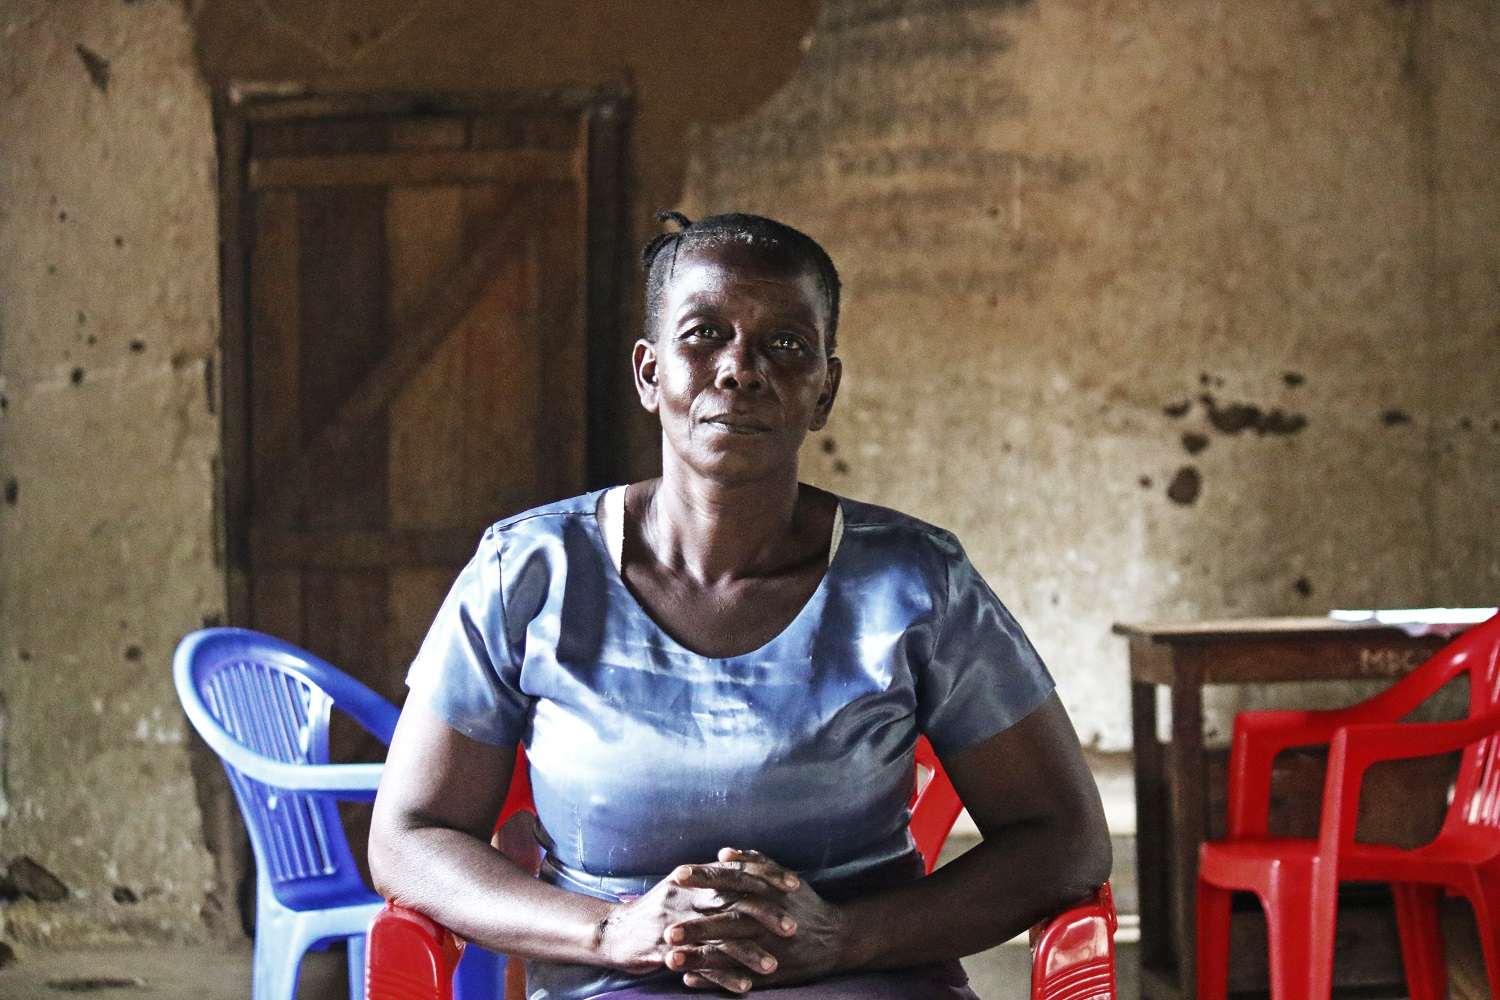 Catherine's property rights have been threatened with violence in Magu, Tanzania (c) Ben Small/HelpAge International